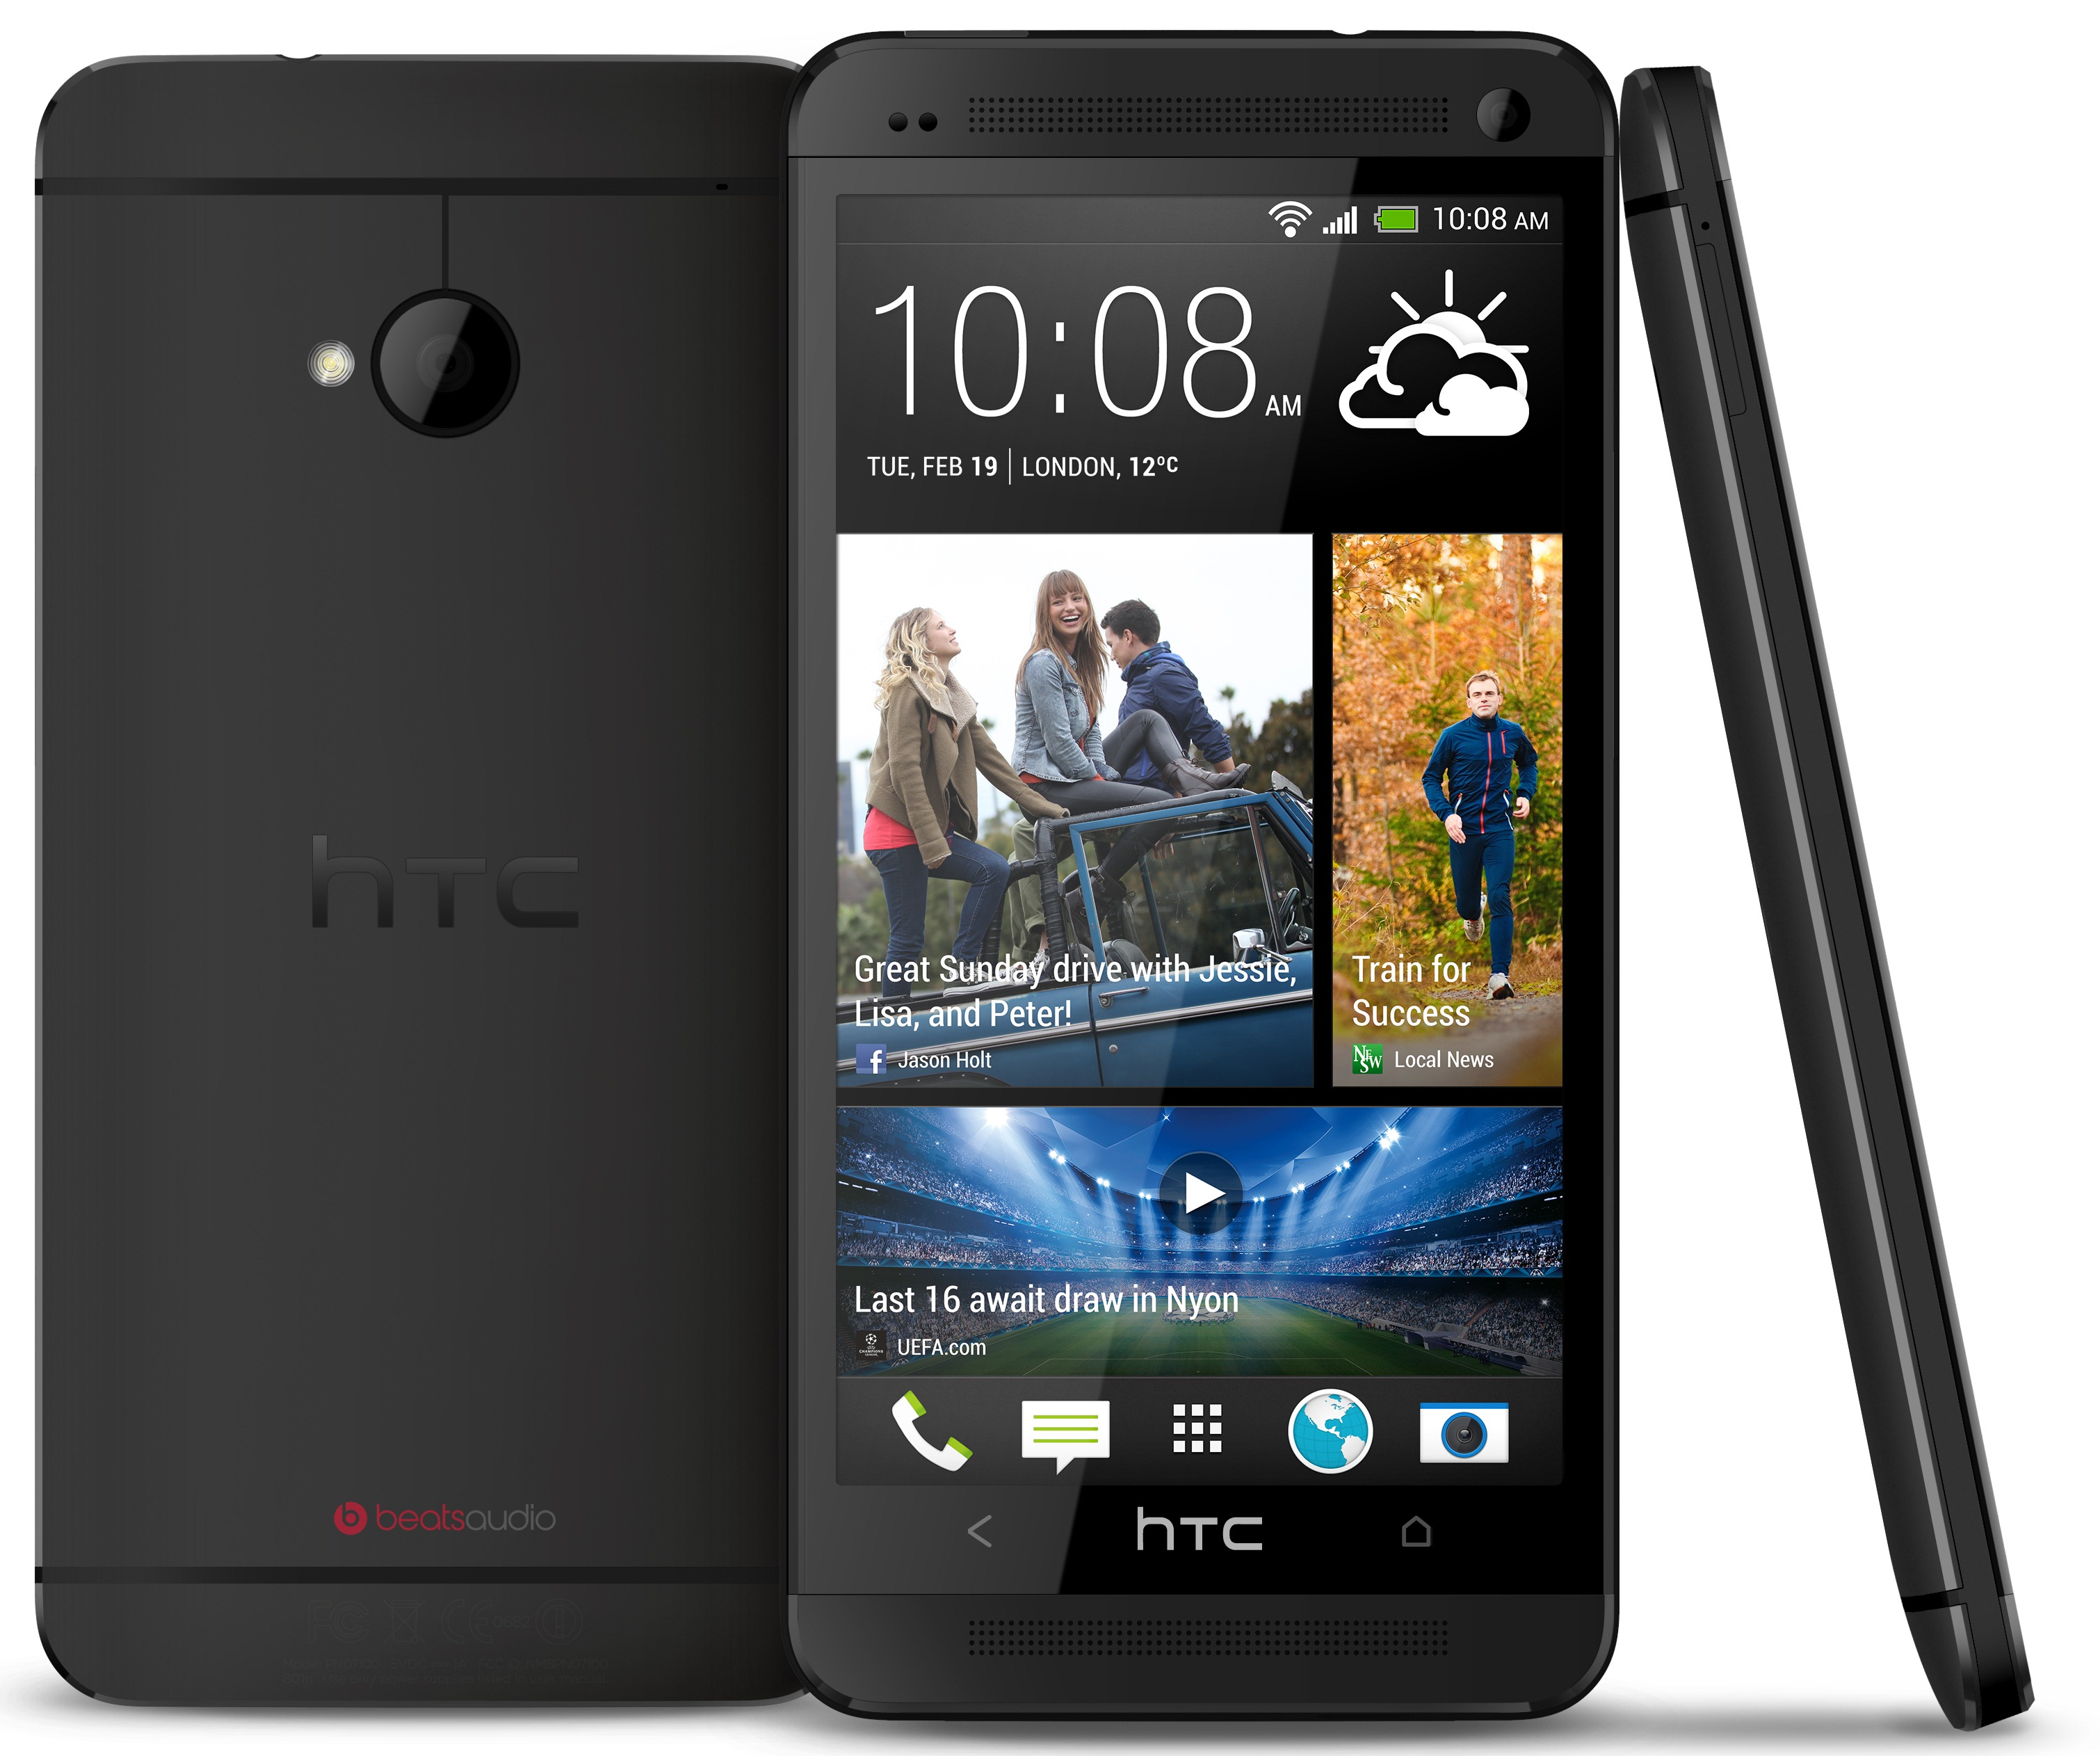 nexusae0_HTC-One_3V_Black.jpg